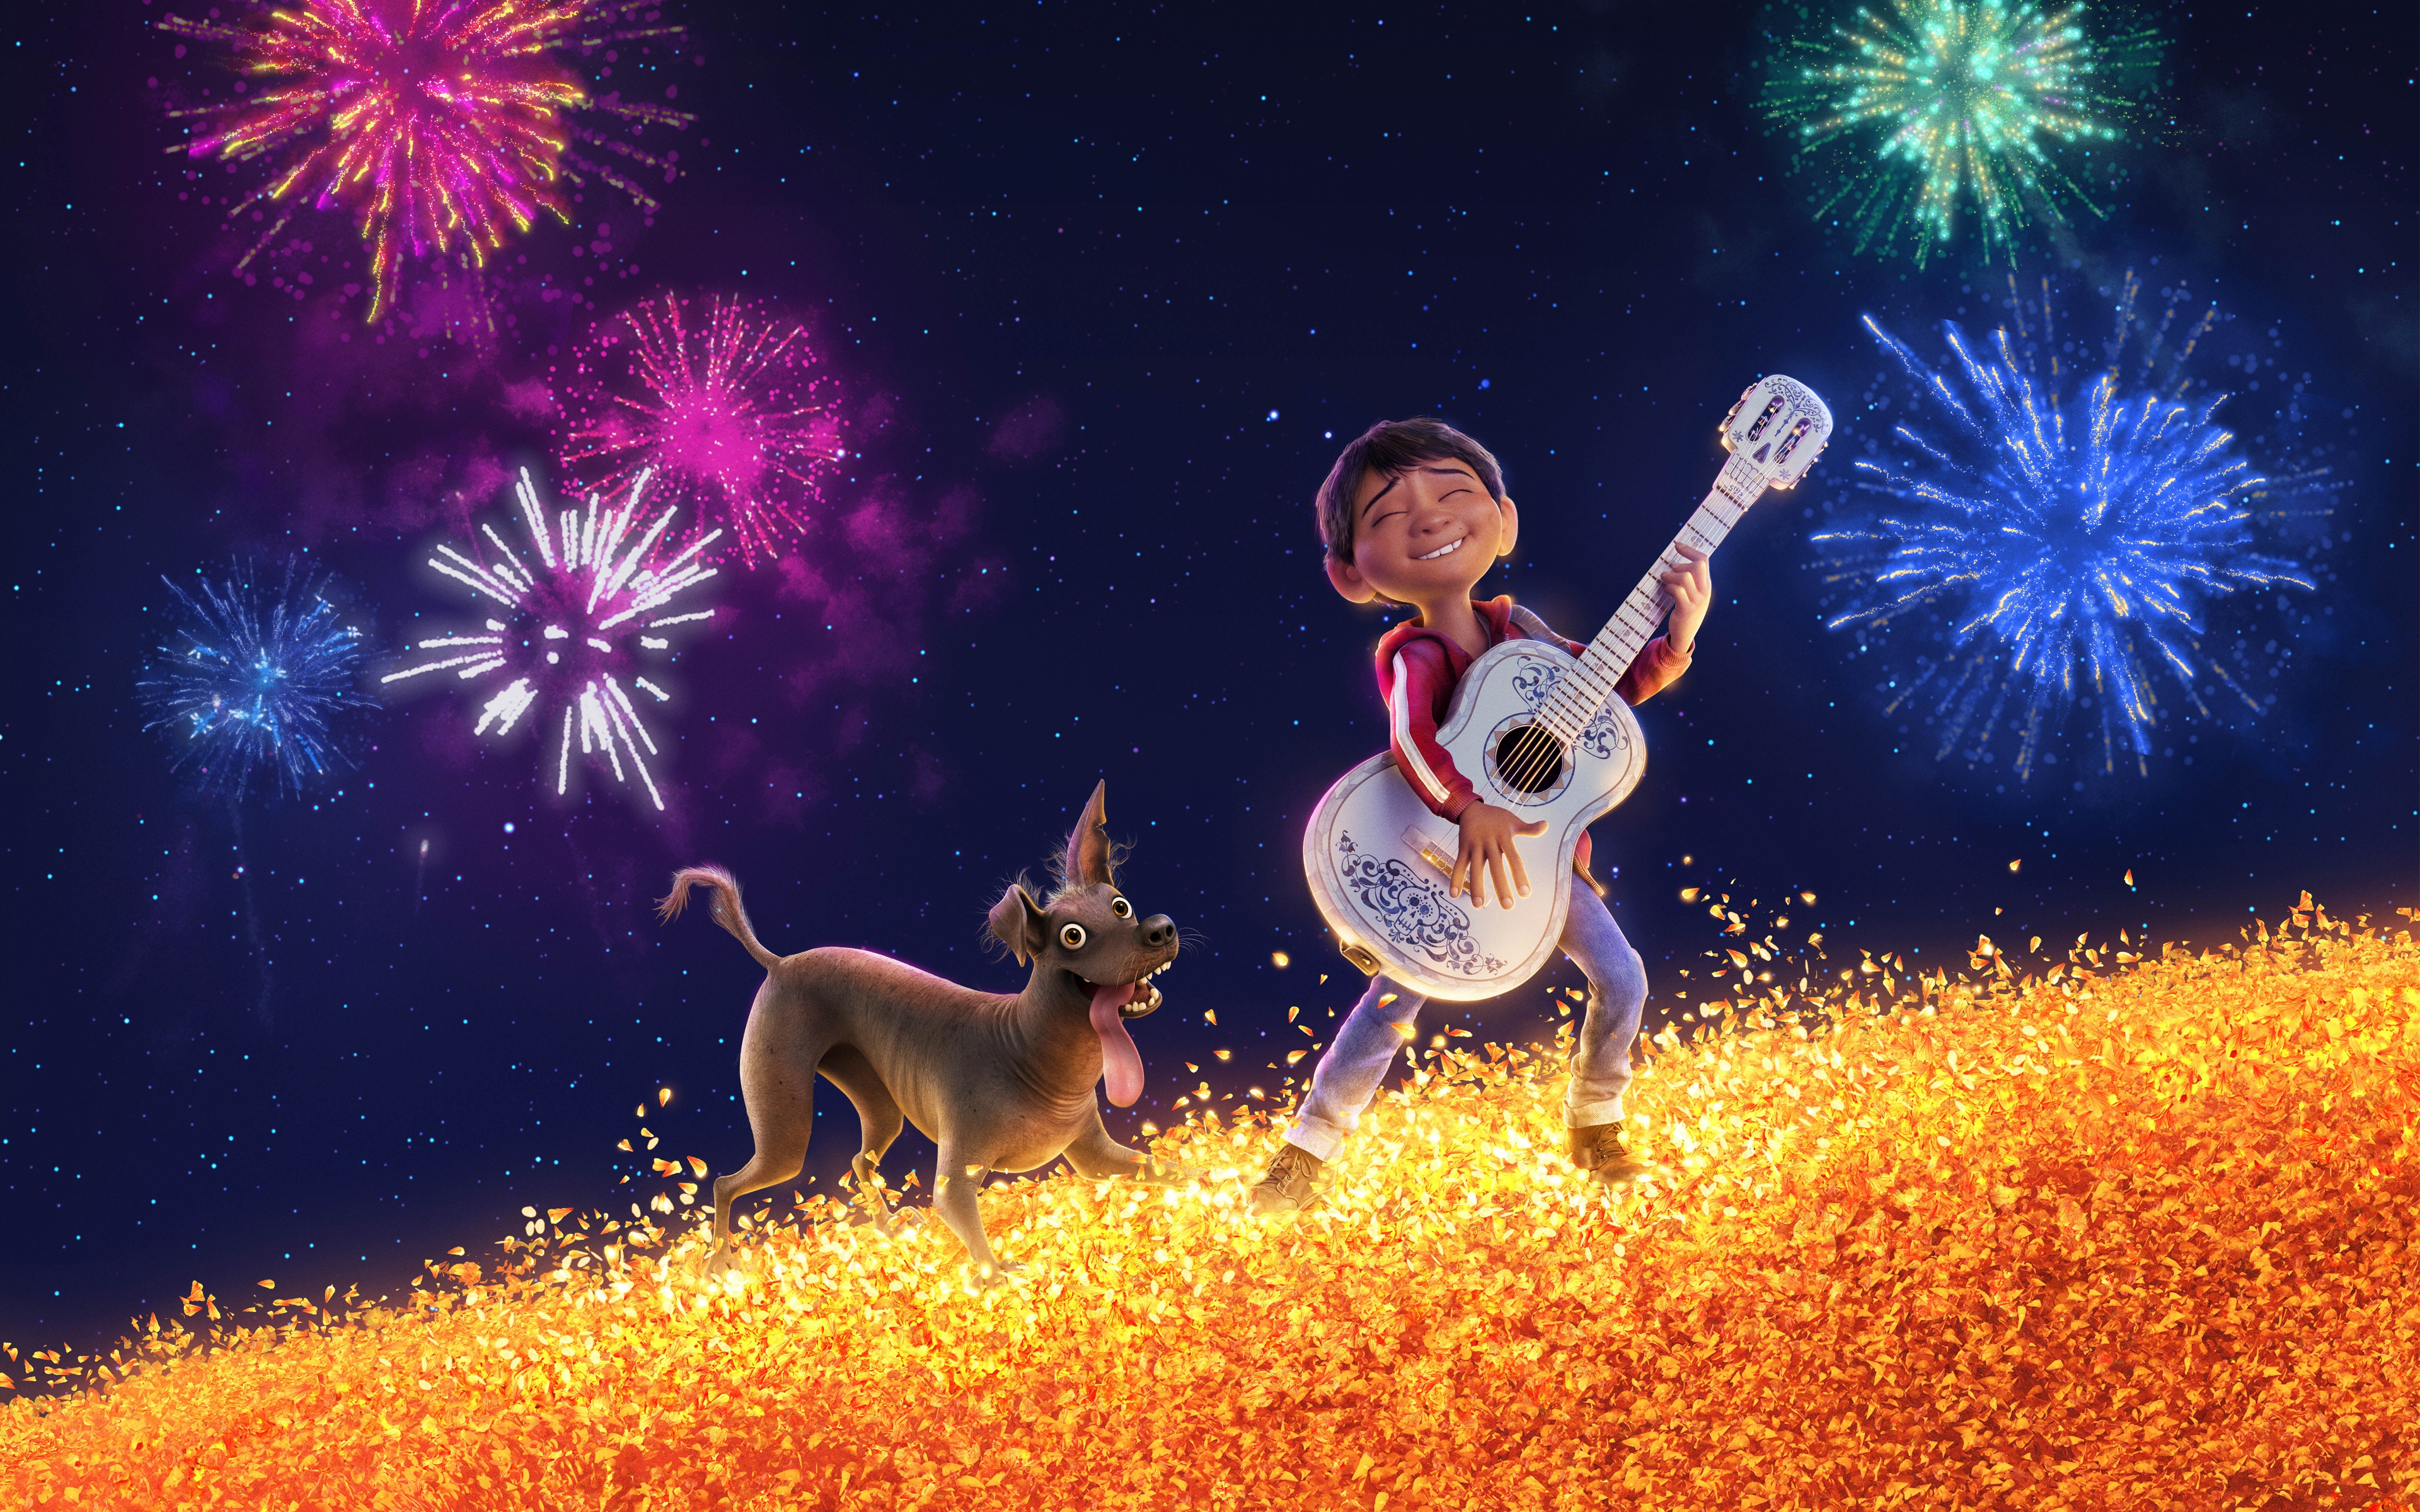 Coco 4k, HD Movies, 4k Wallpapers, Images, Backgrounds ...